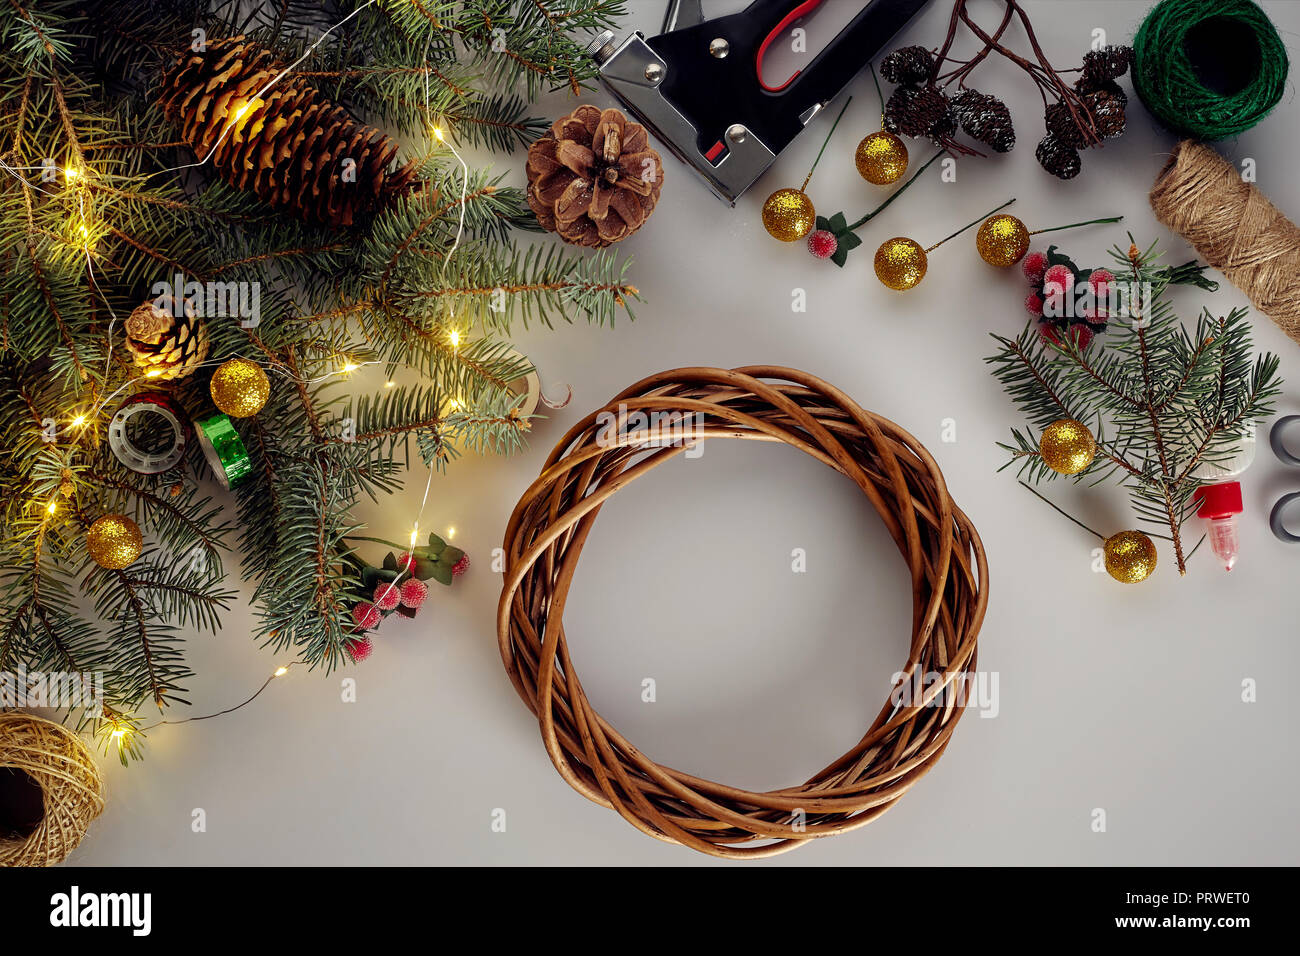 Christmas Background With Decorations Garland And Pine Cones Creating Wreath Made Of Christmas Tree Branches On White Background Stock Photo Alamy